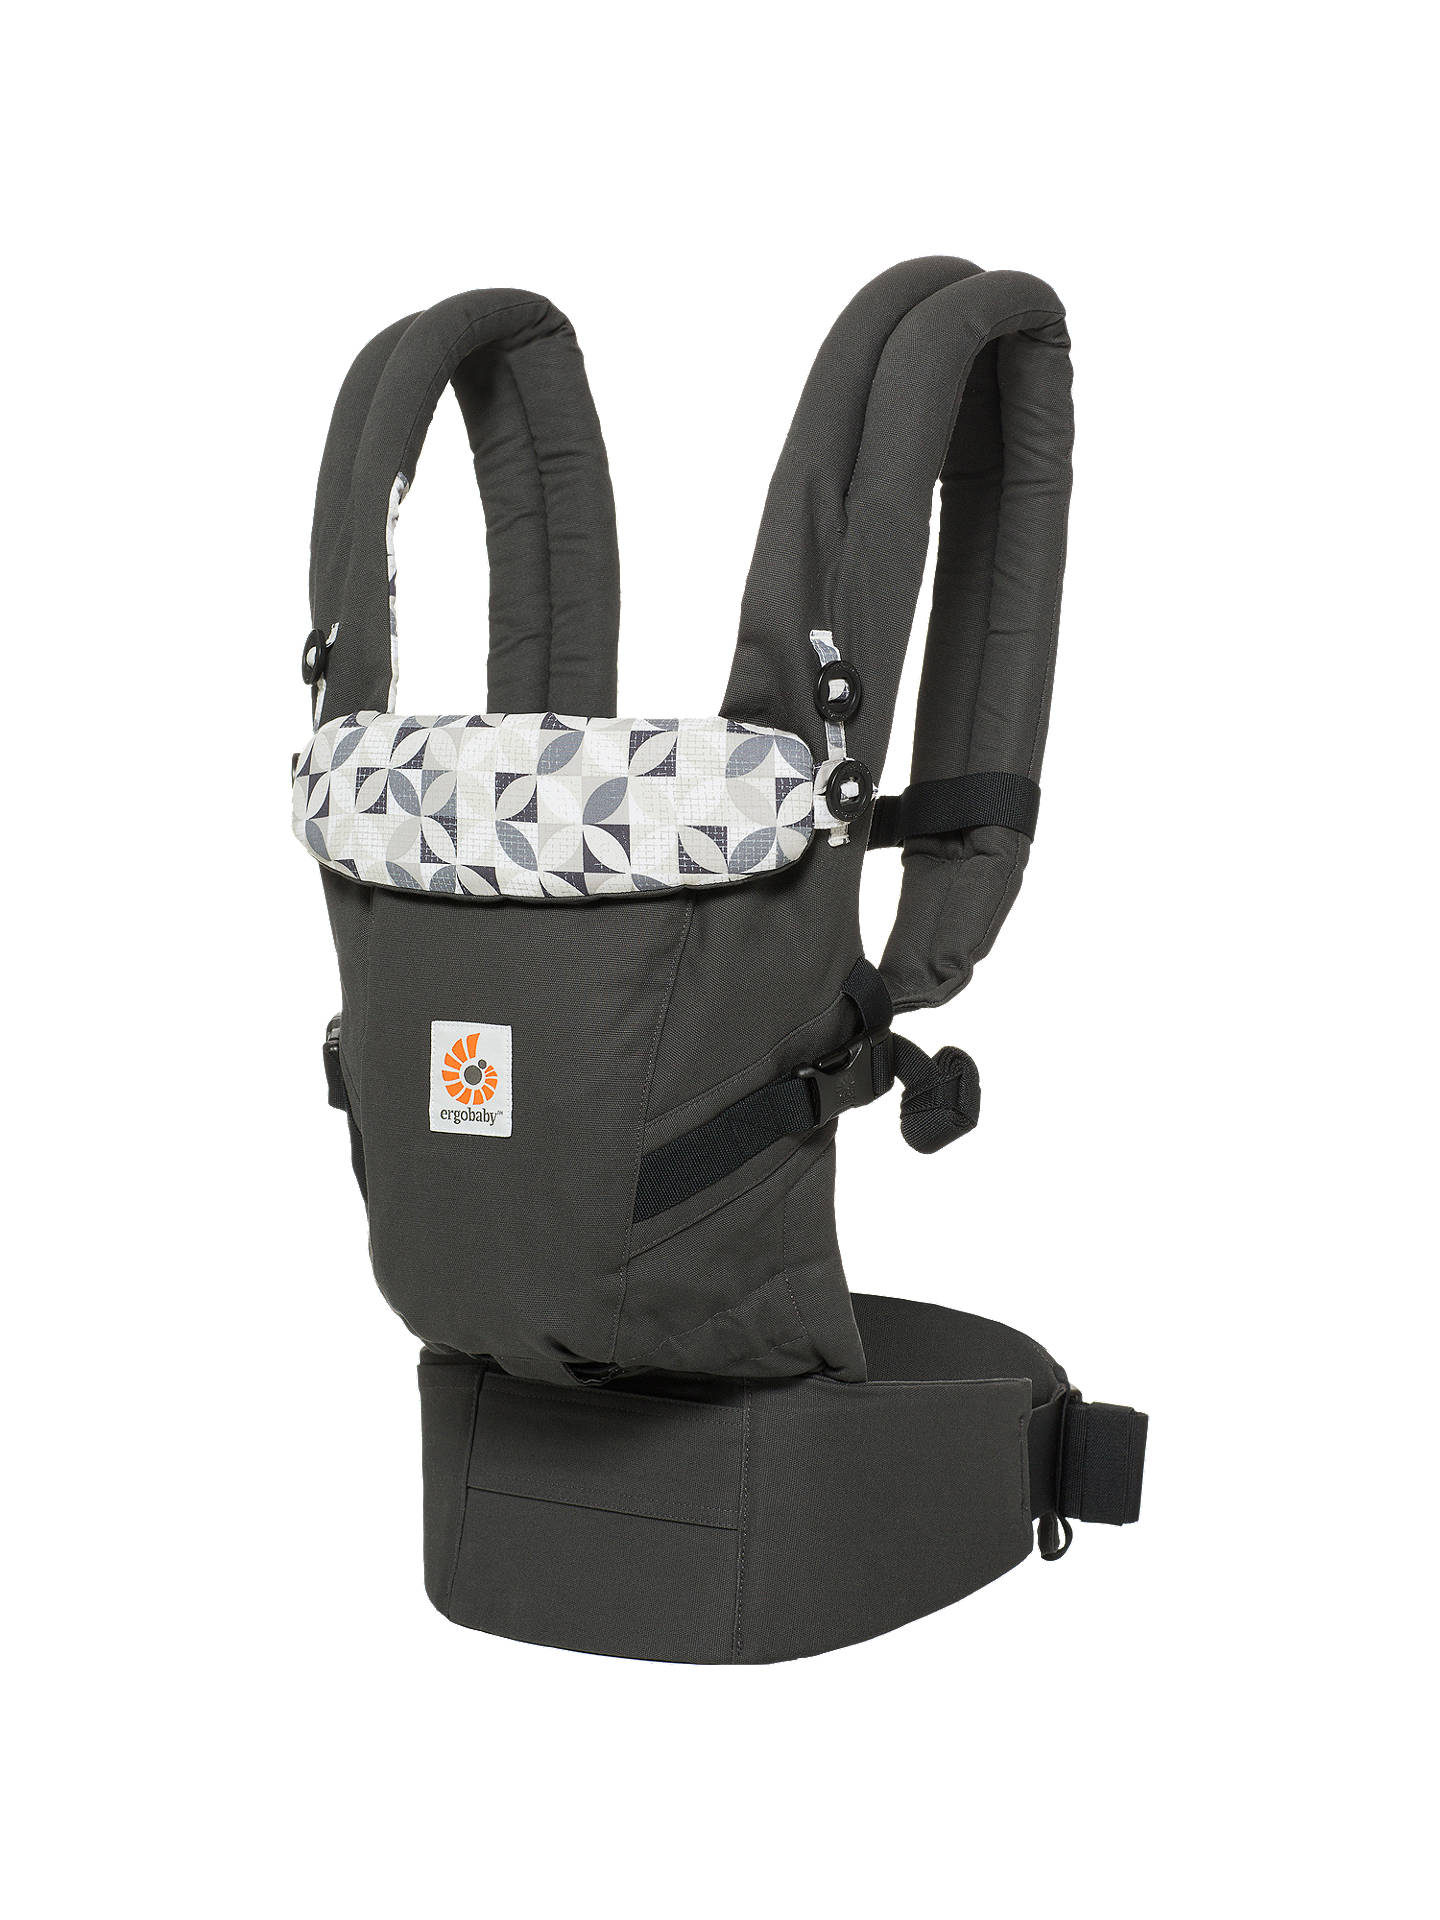 Ergobaby Adapt Baby Carrier At John Lewis Partners